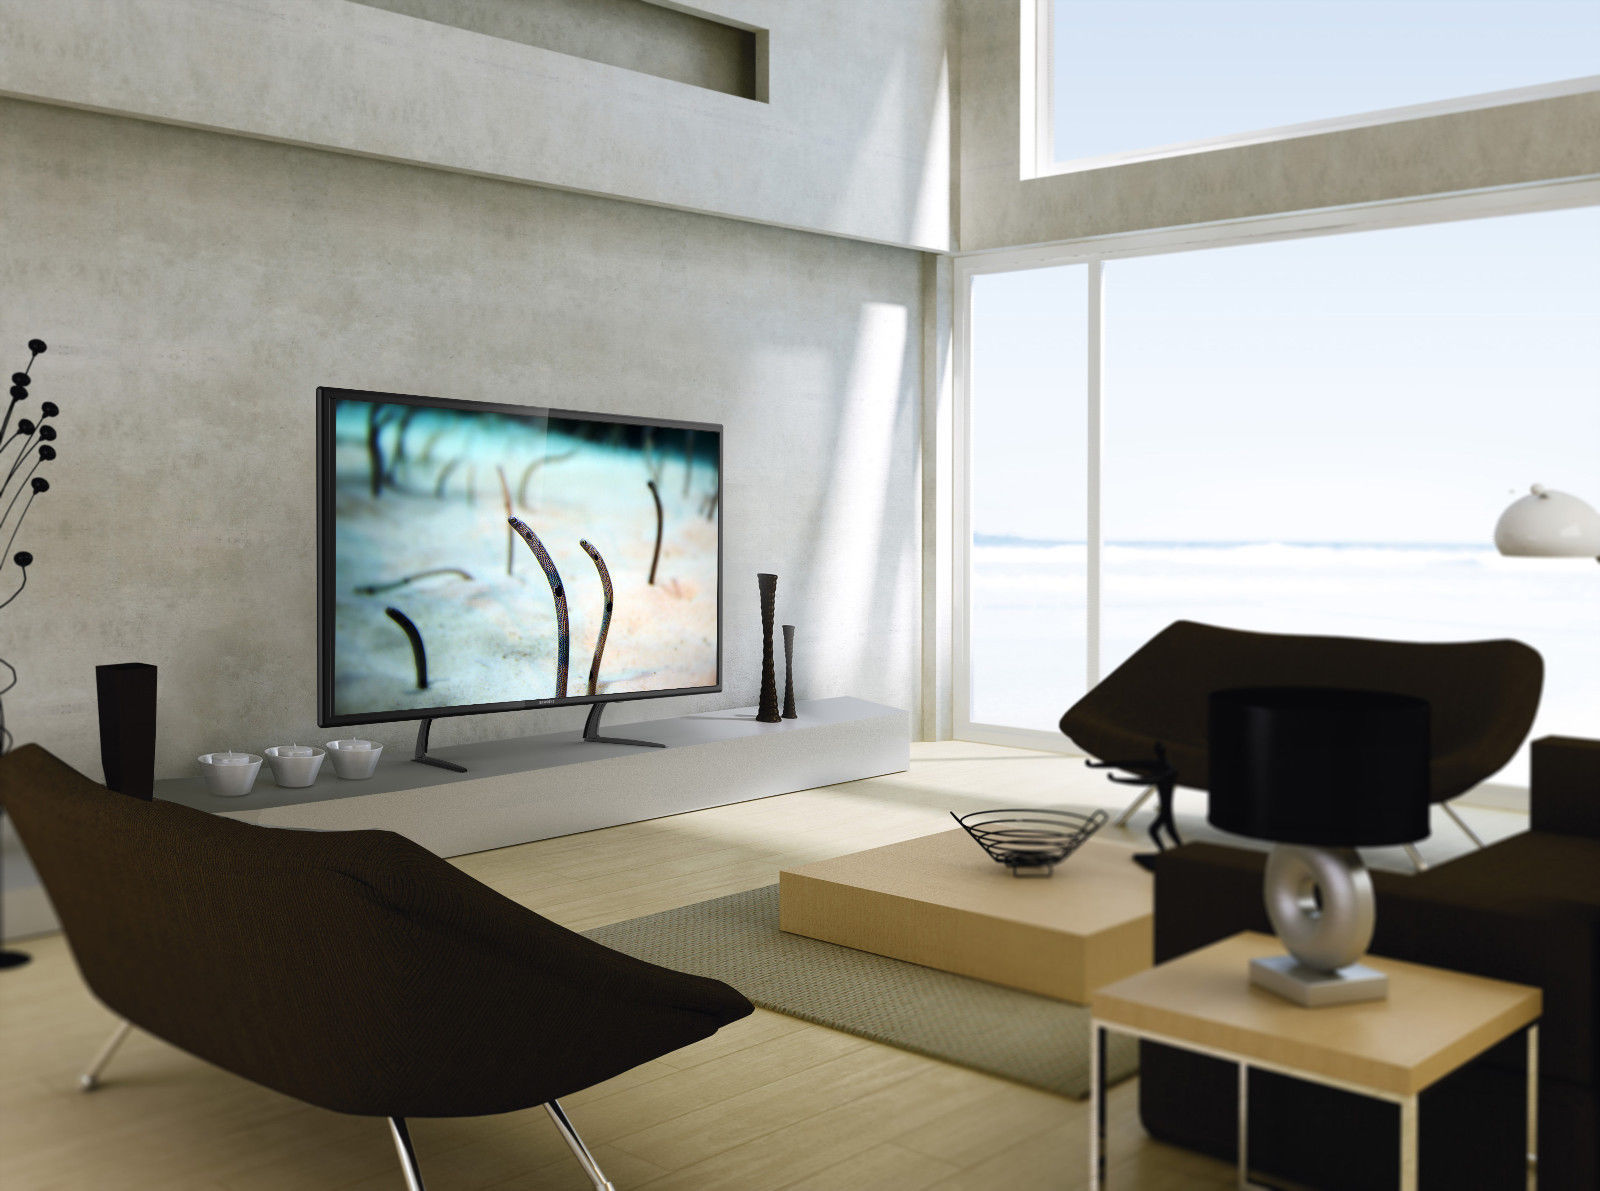 Universal Table Top TV Stand Legs for LG 55LF6090 Height Adjustable